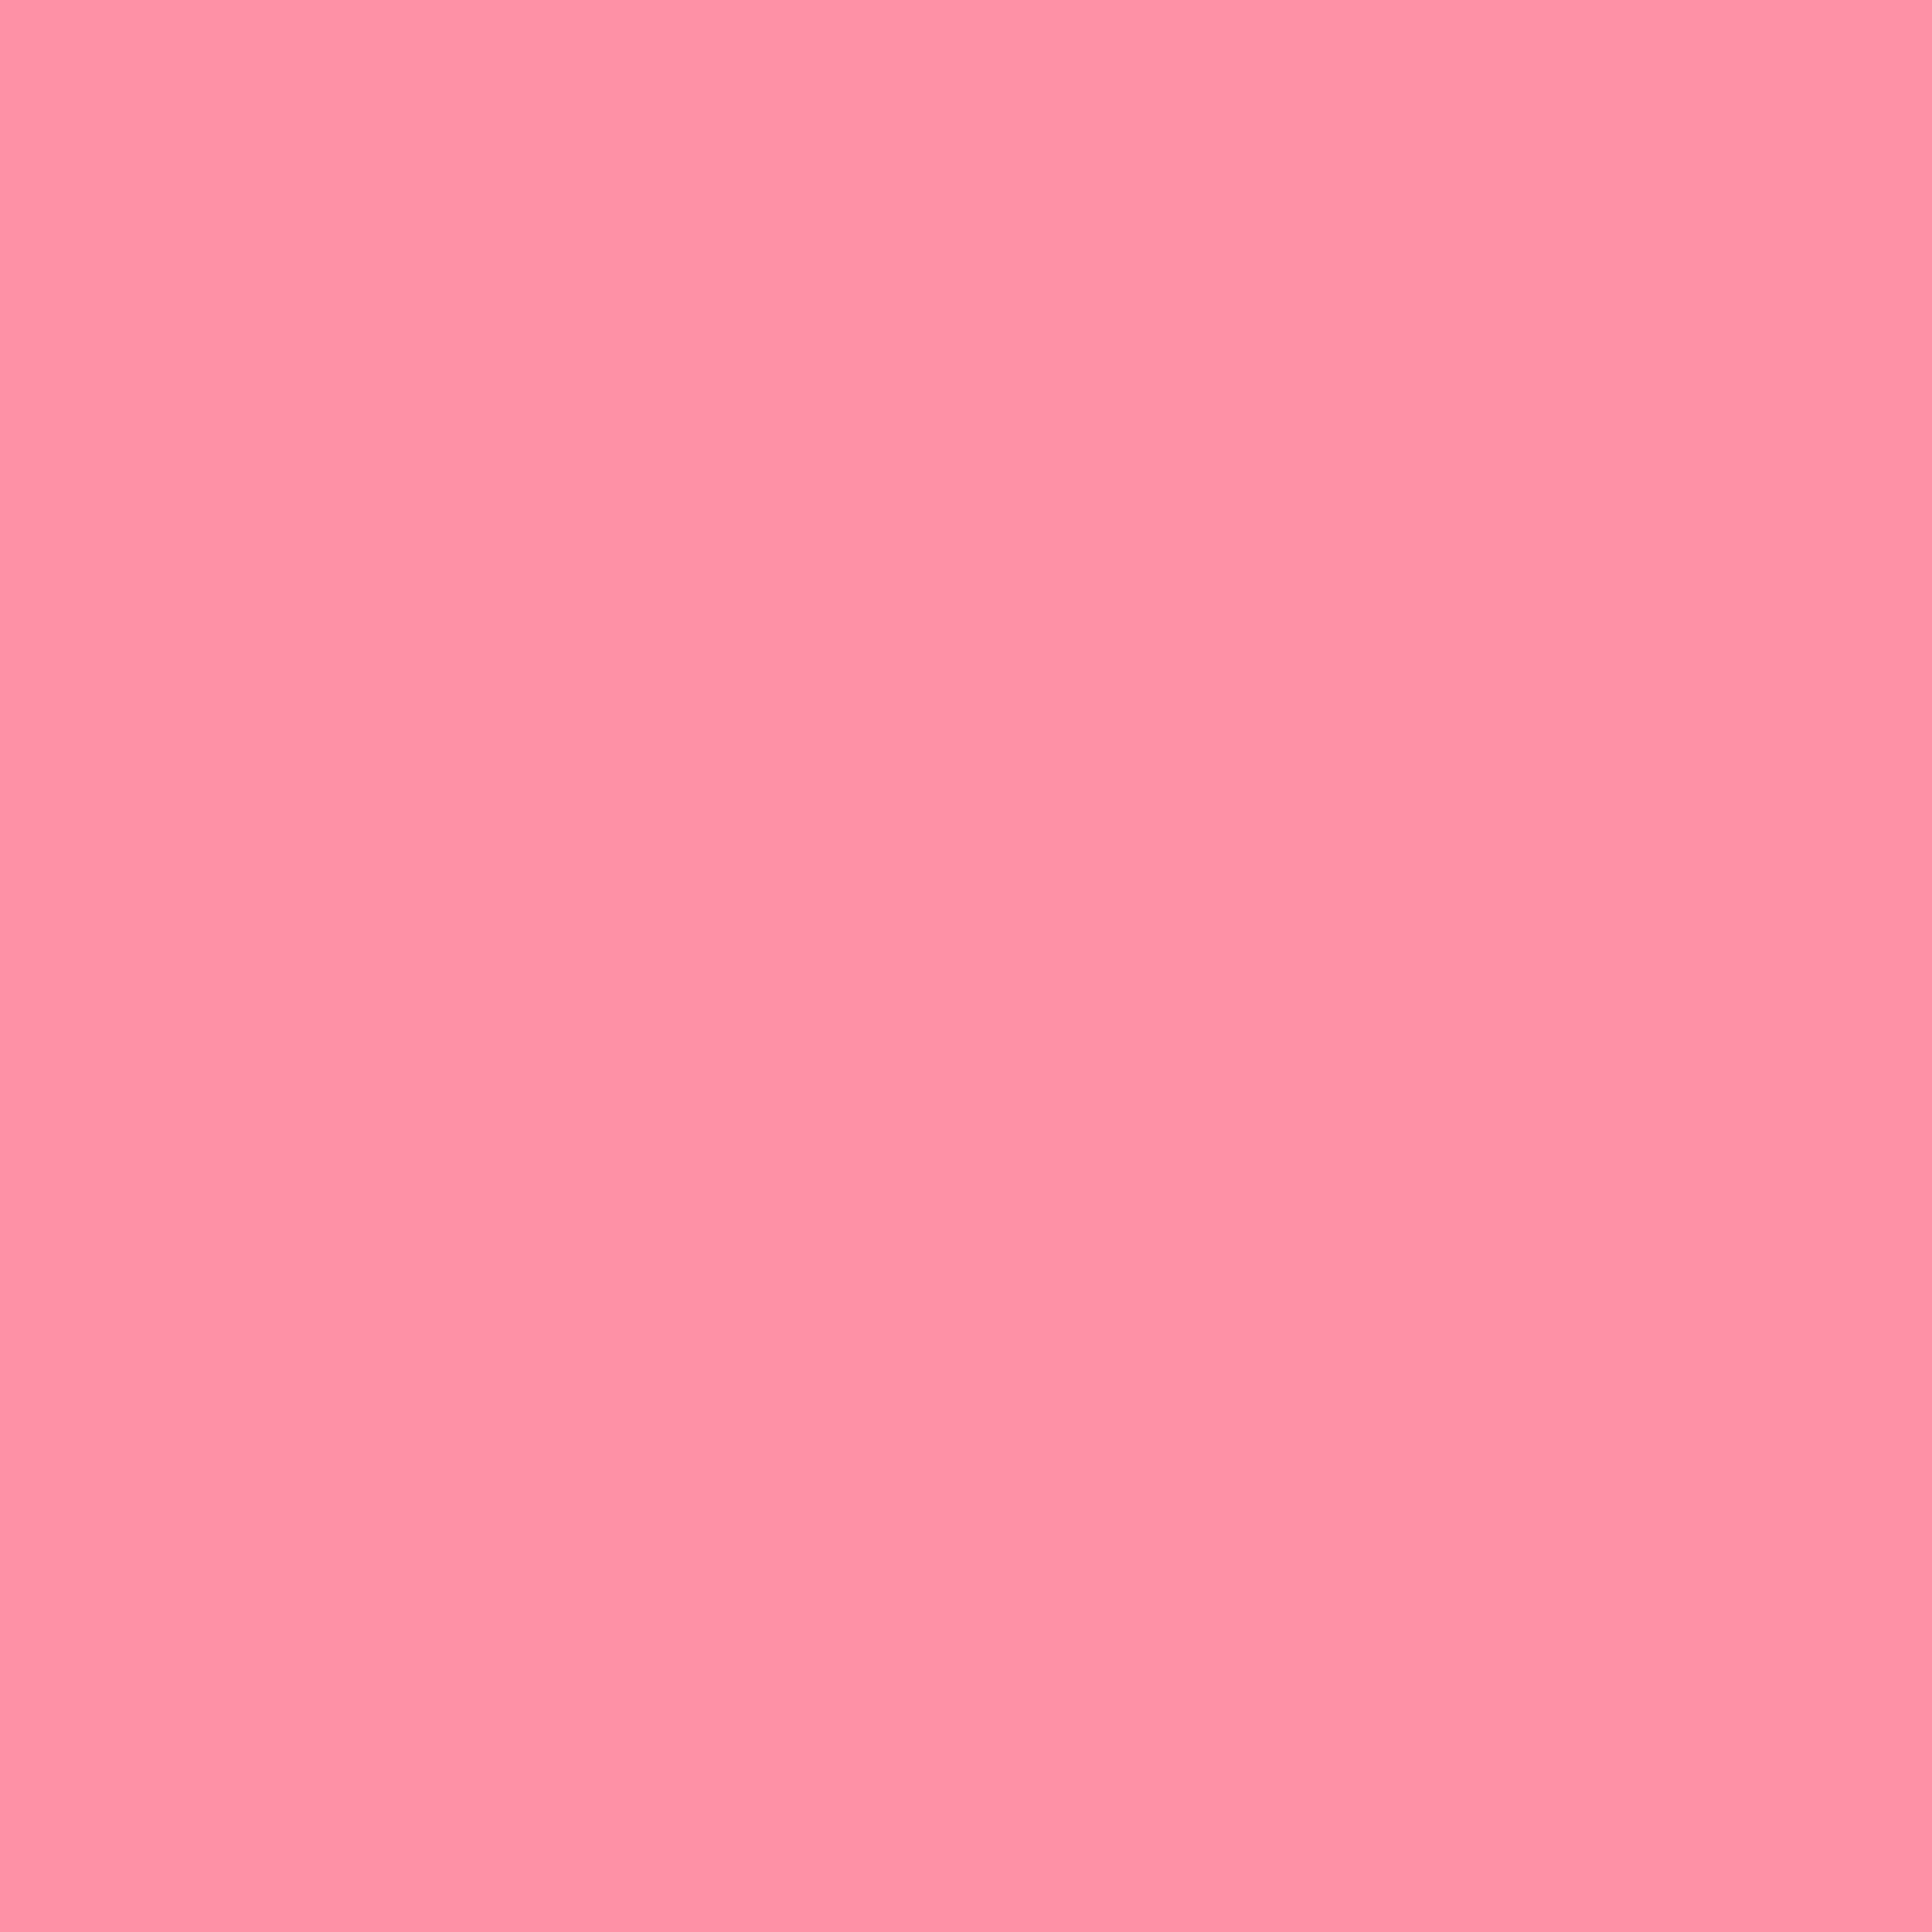 3600x3600 Salmon Pink Solid Color Background